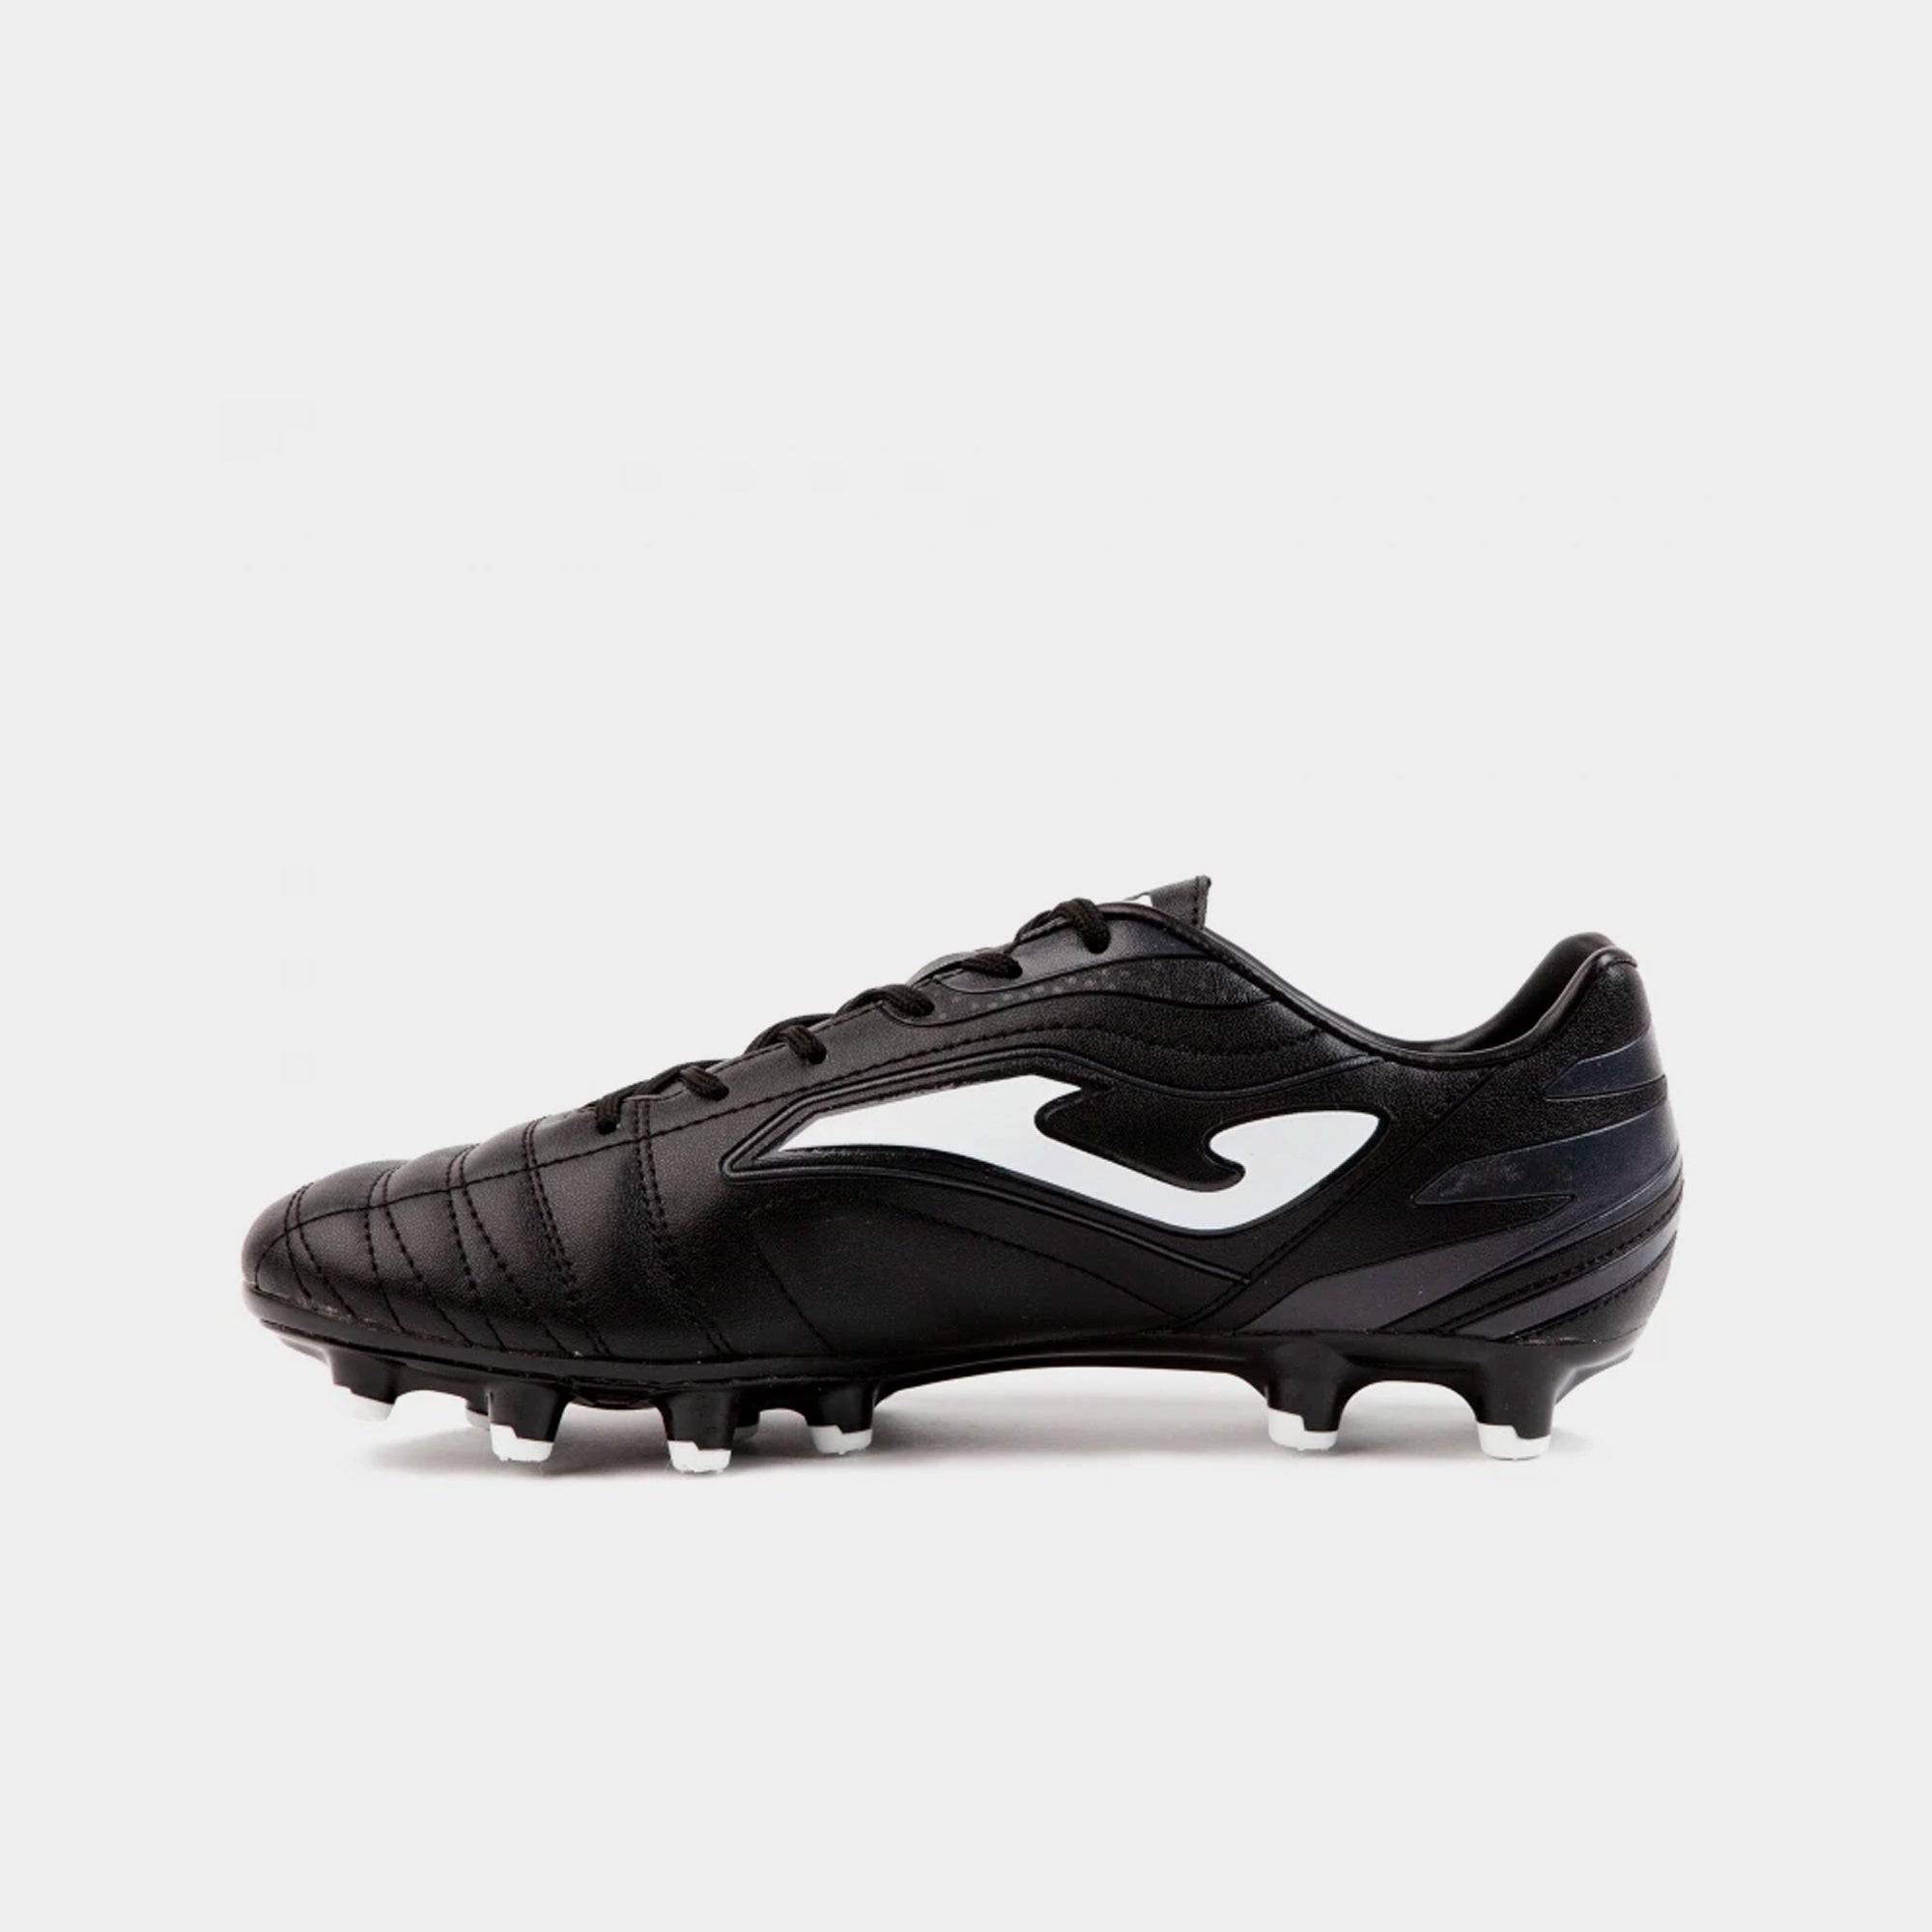 Aguila 801 Firmground Soccer Shoes